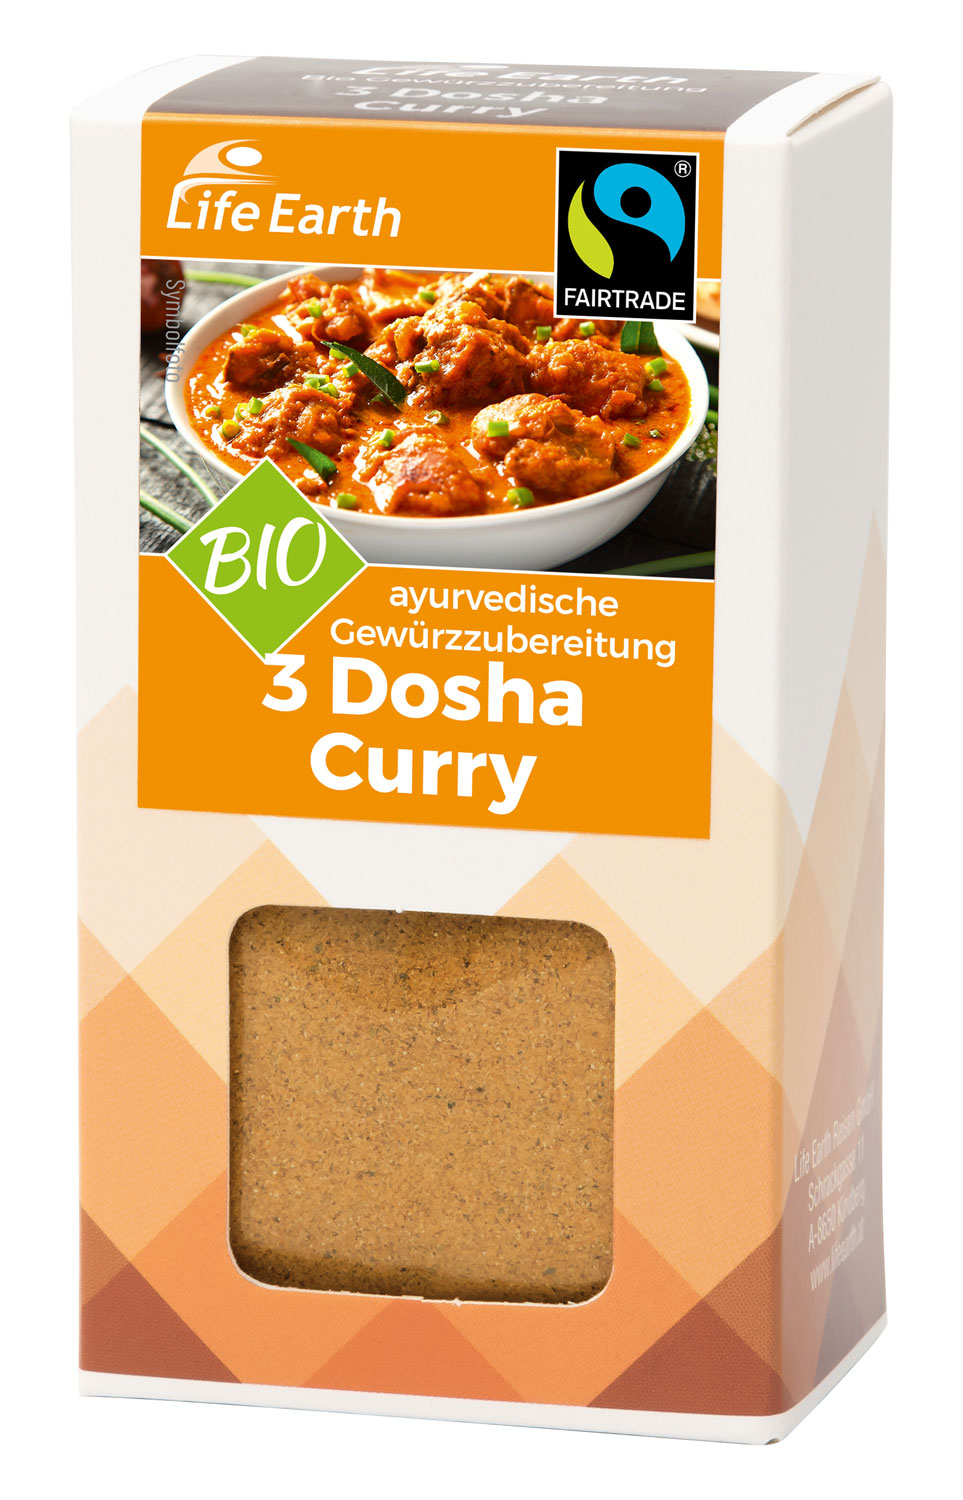 3 Dosha Curry